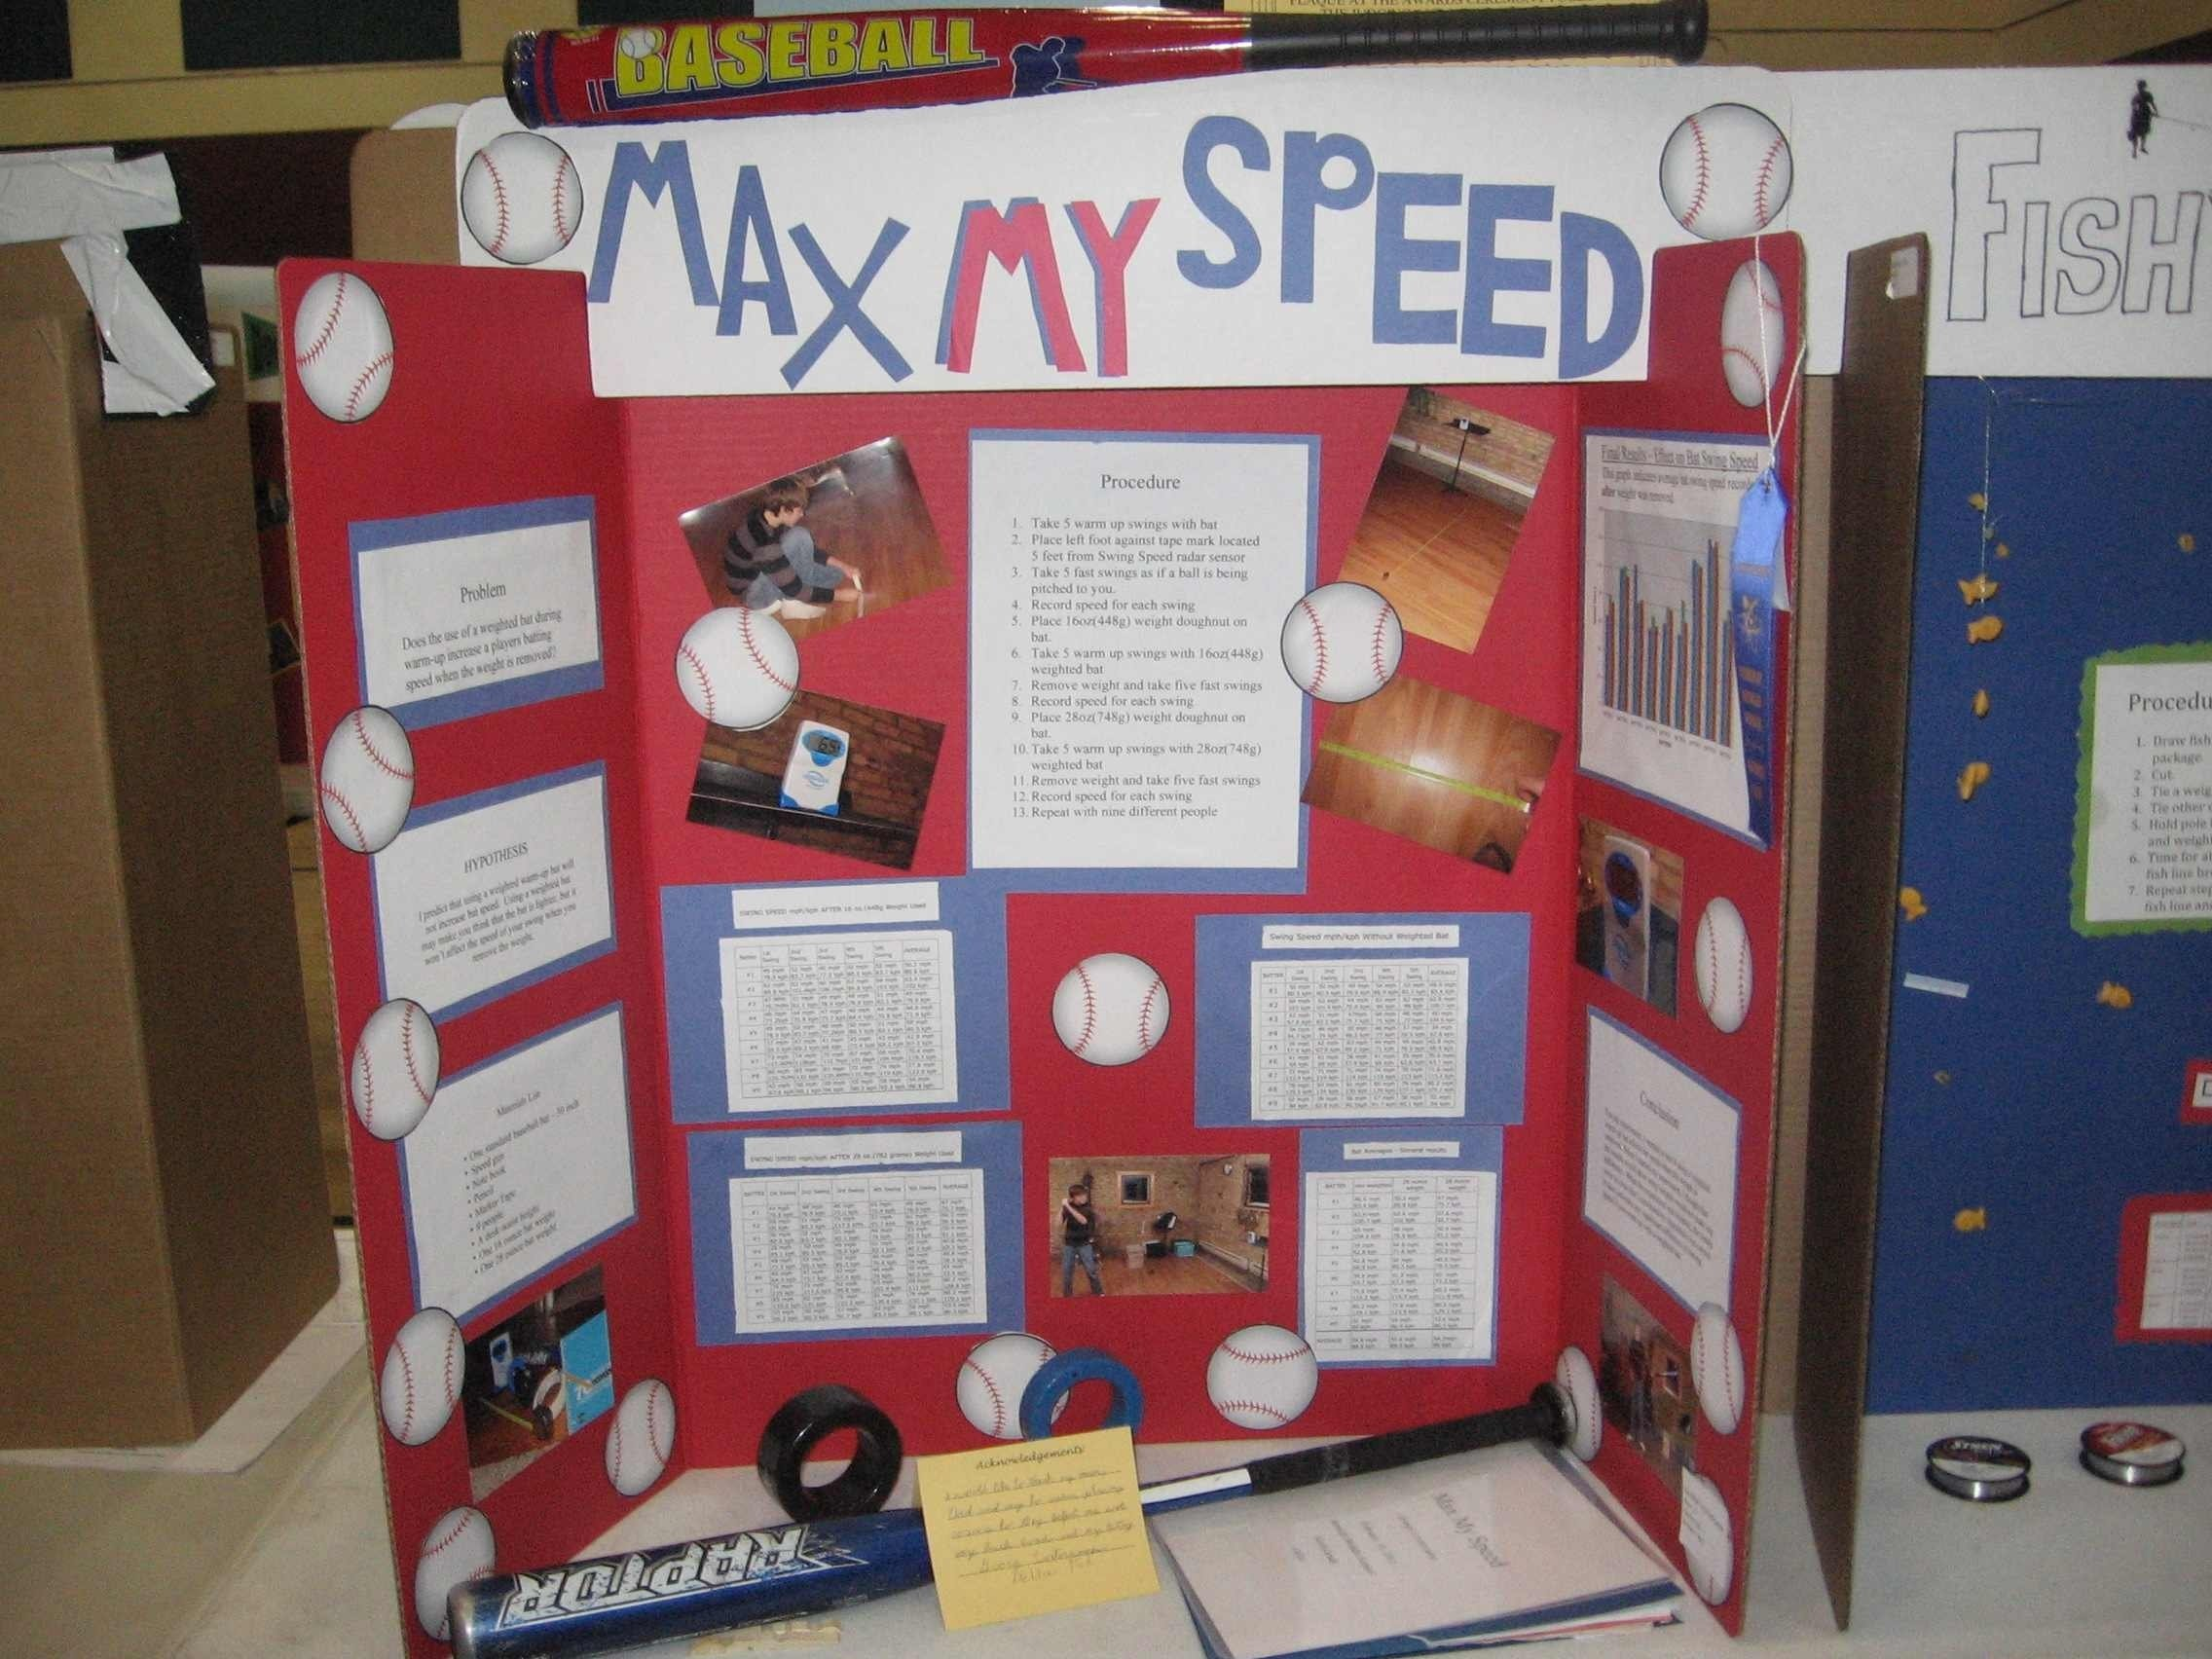 10 Amazing Ideas For Science Fair Project ms bergs delta science bemidji k12 mn 22